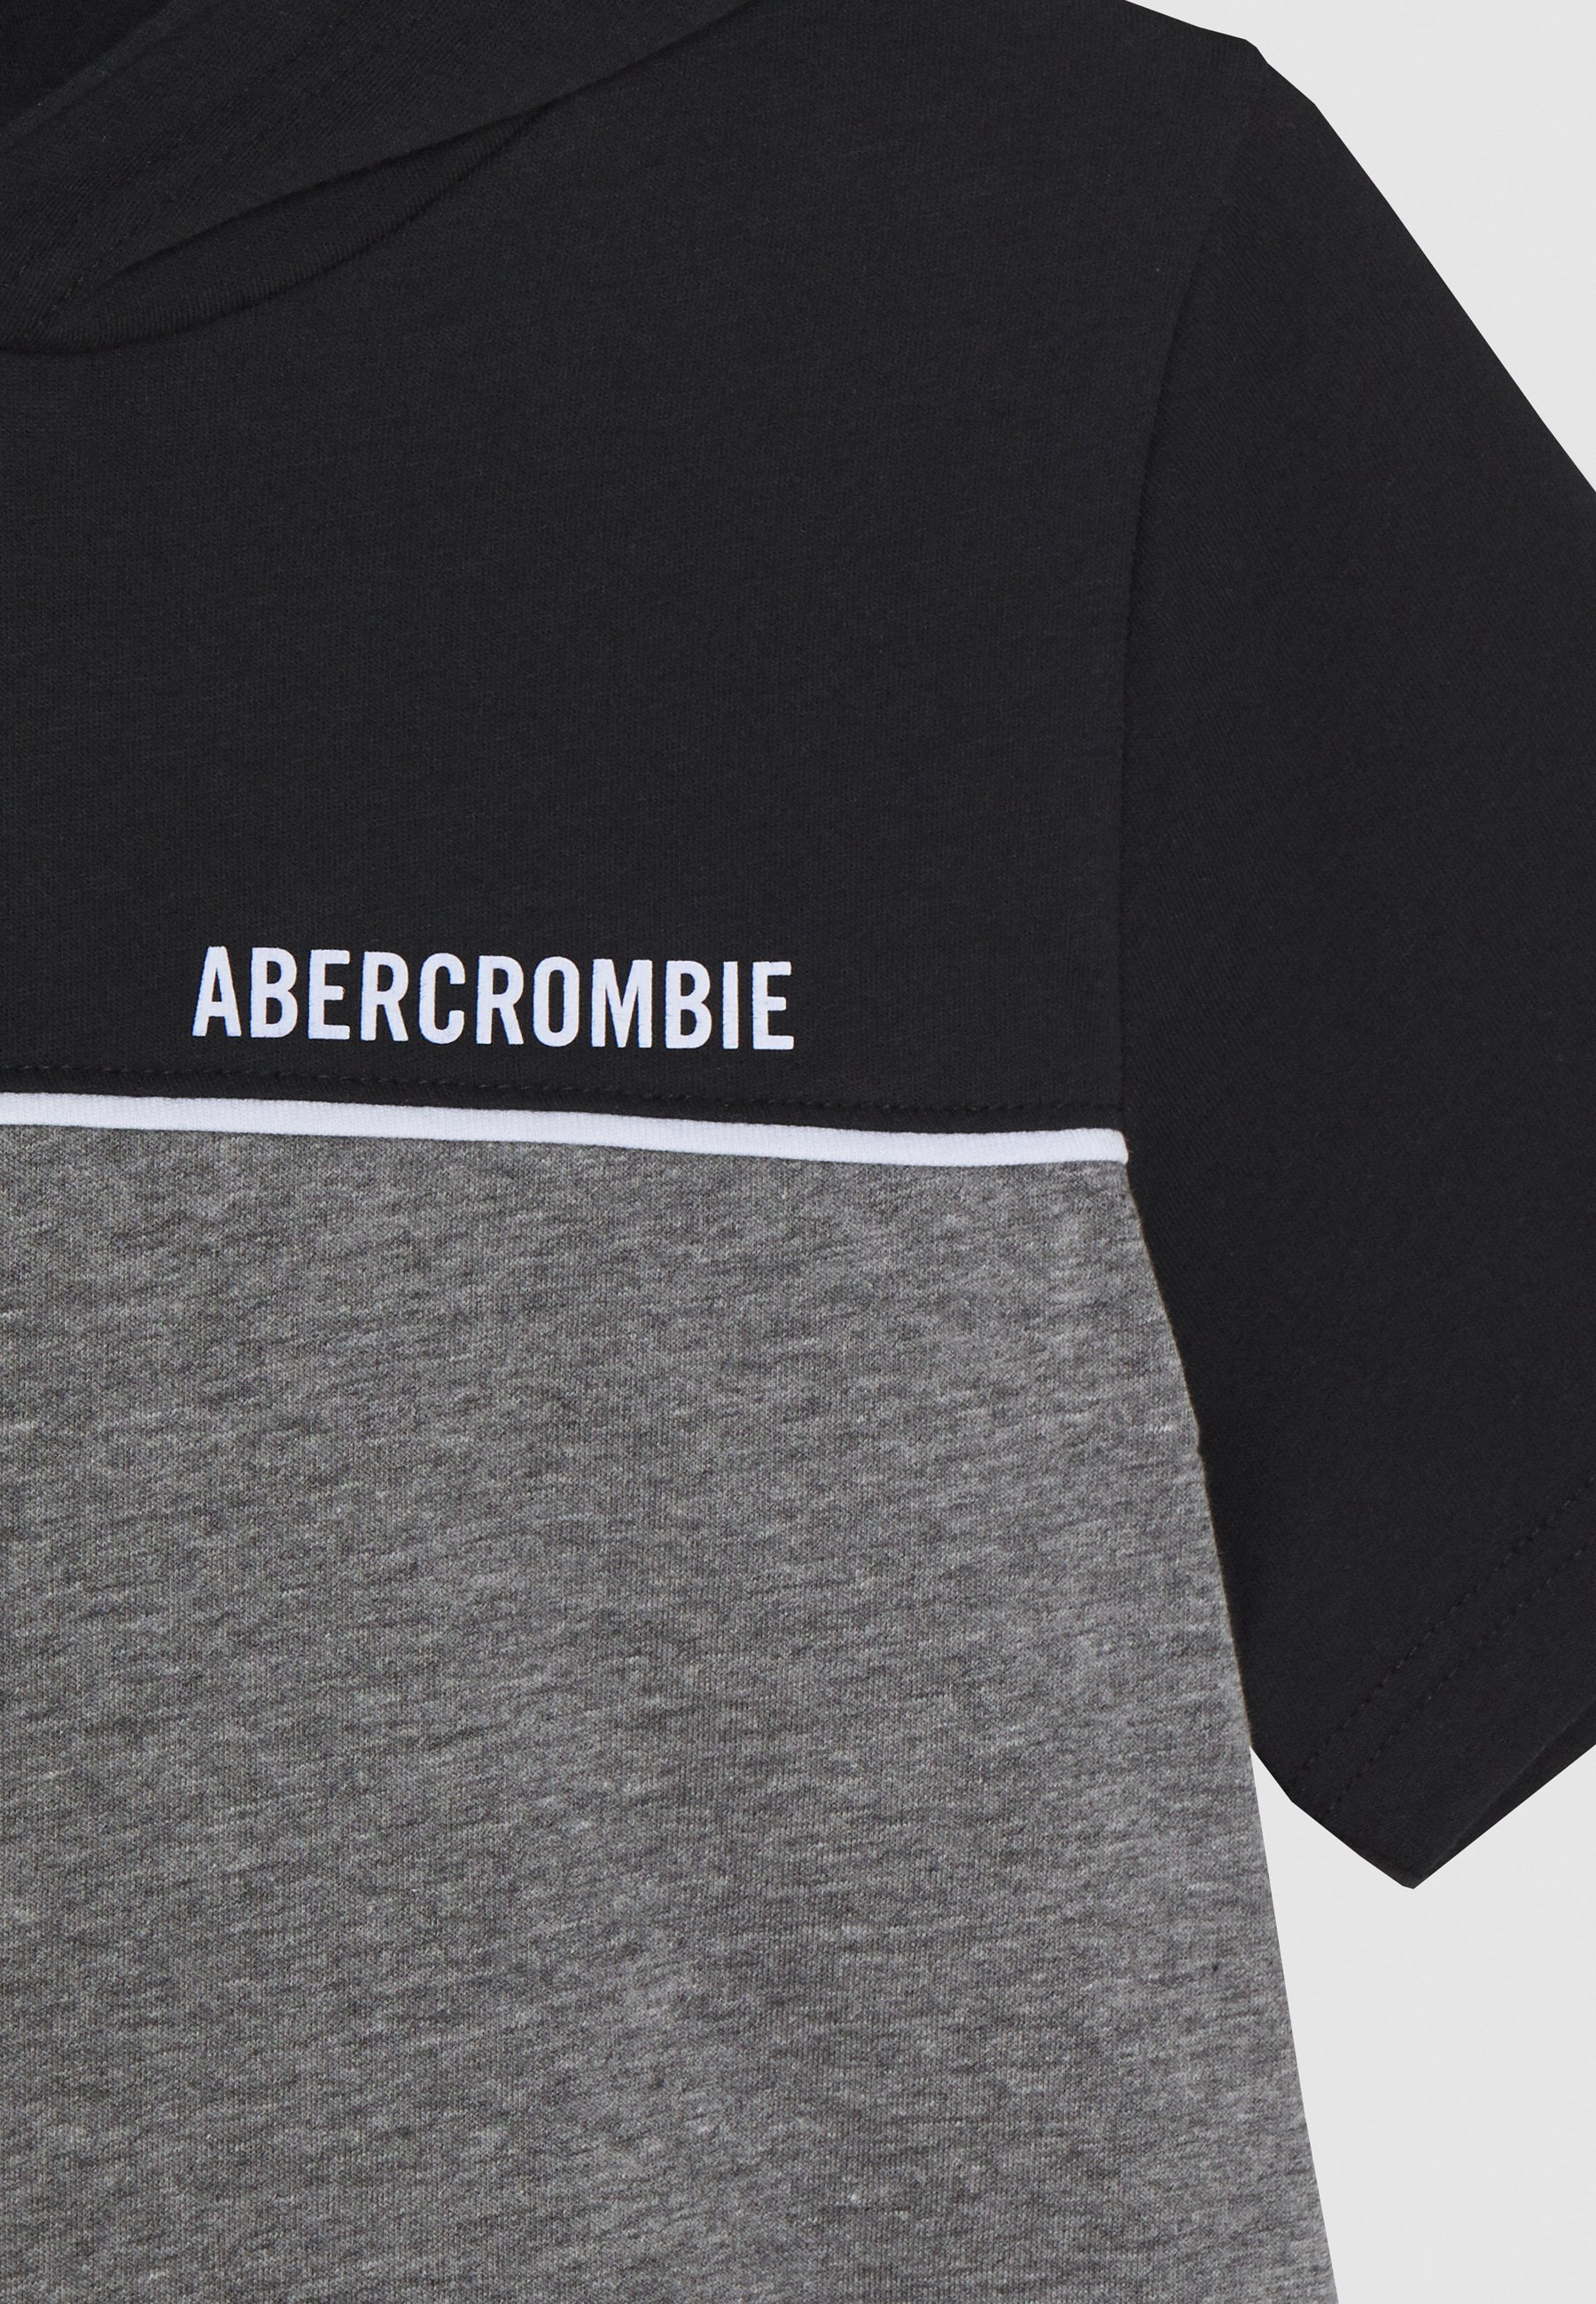 Abercrombie & Fitch Hooded Tee - T-shirts Med Print Black/grey